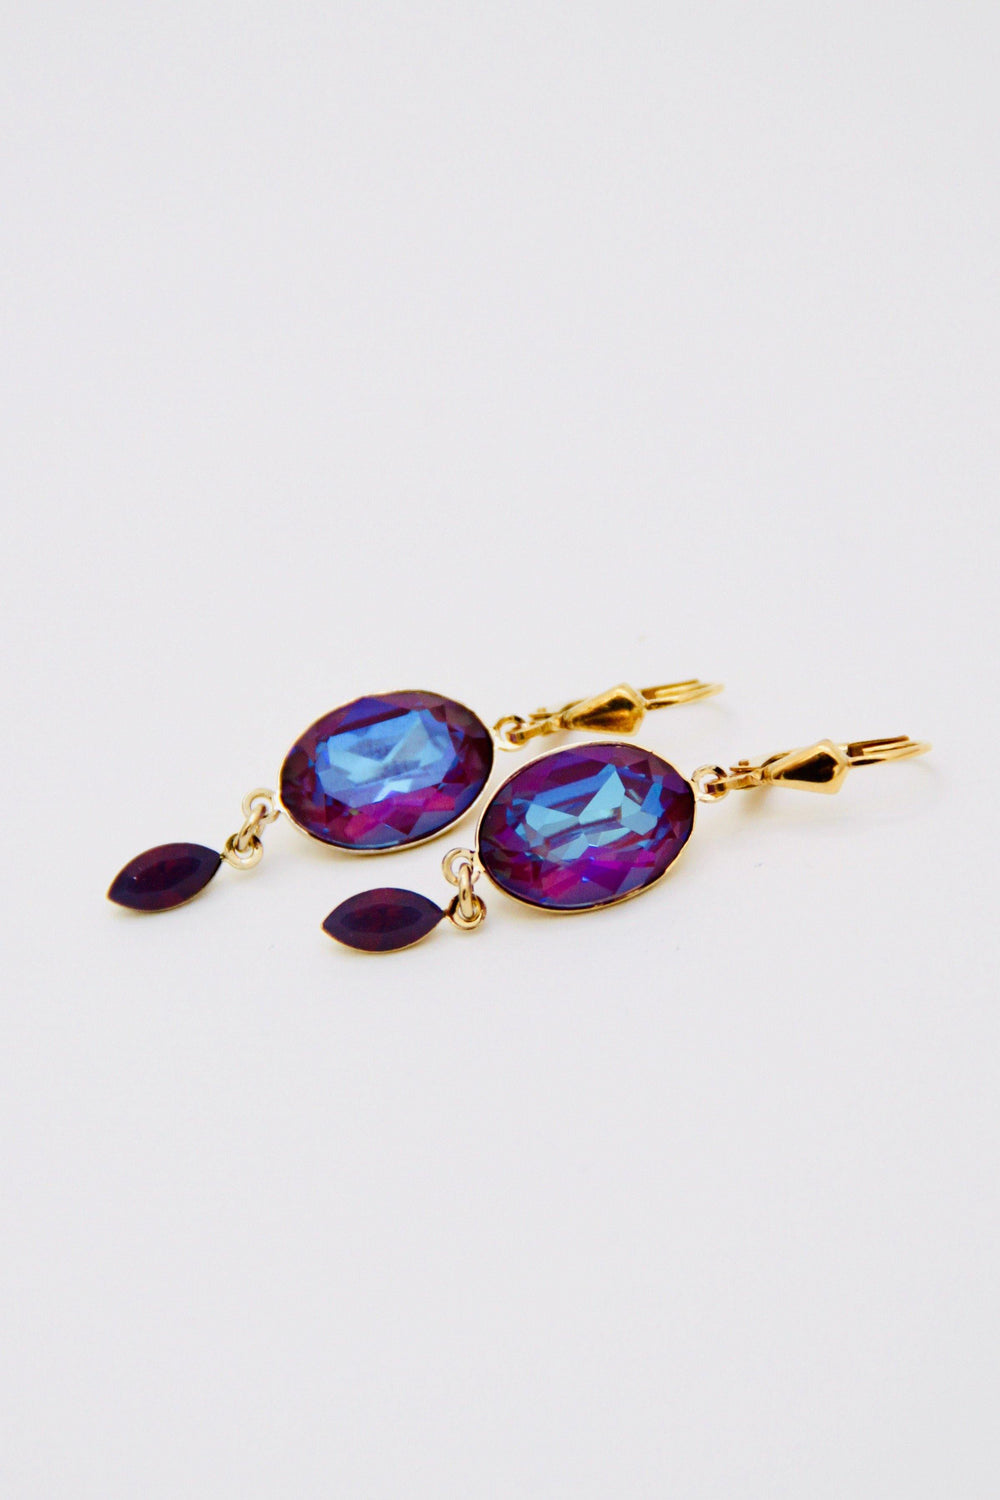 Delite Crystal Burgundy Earrings - Amillis